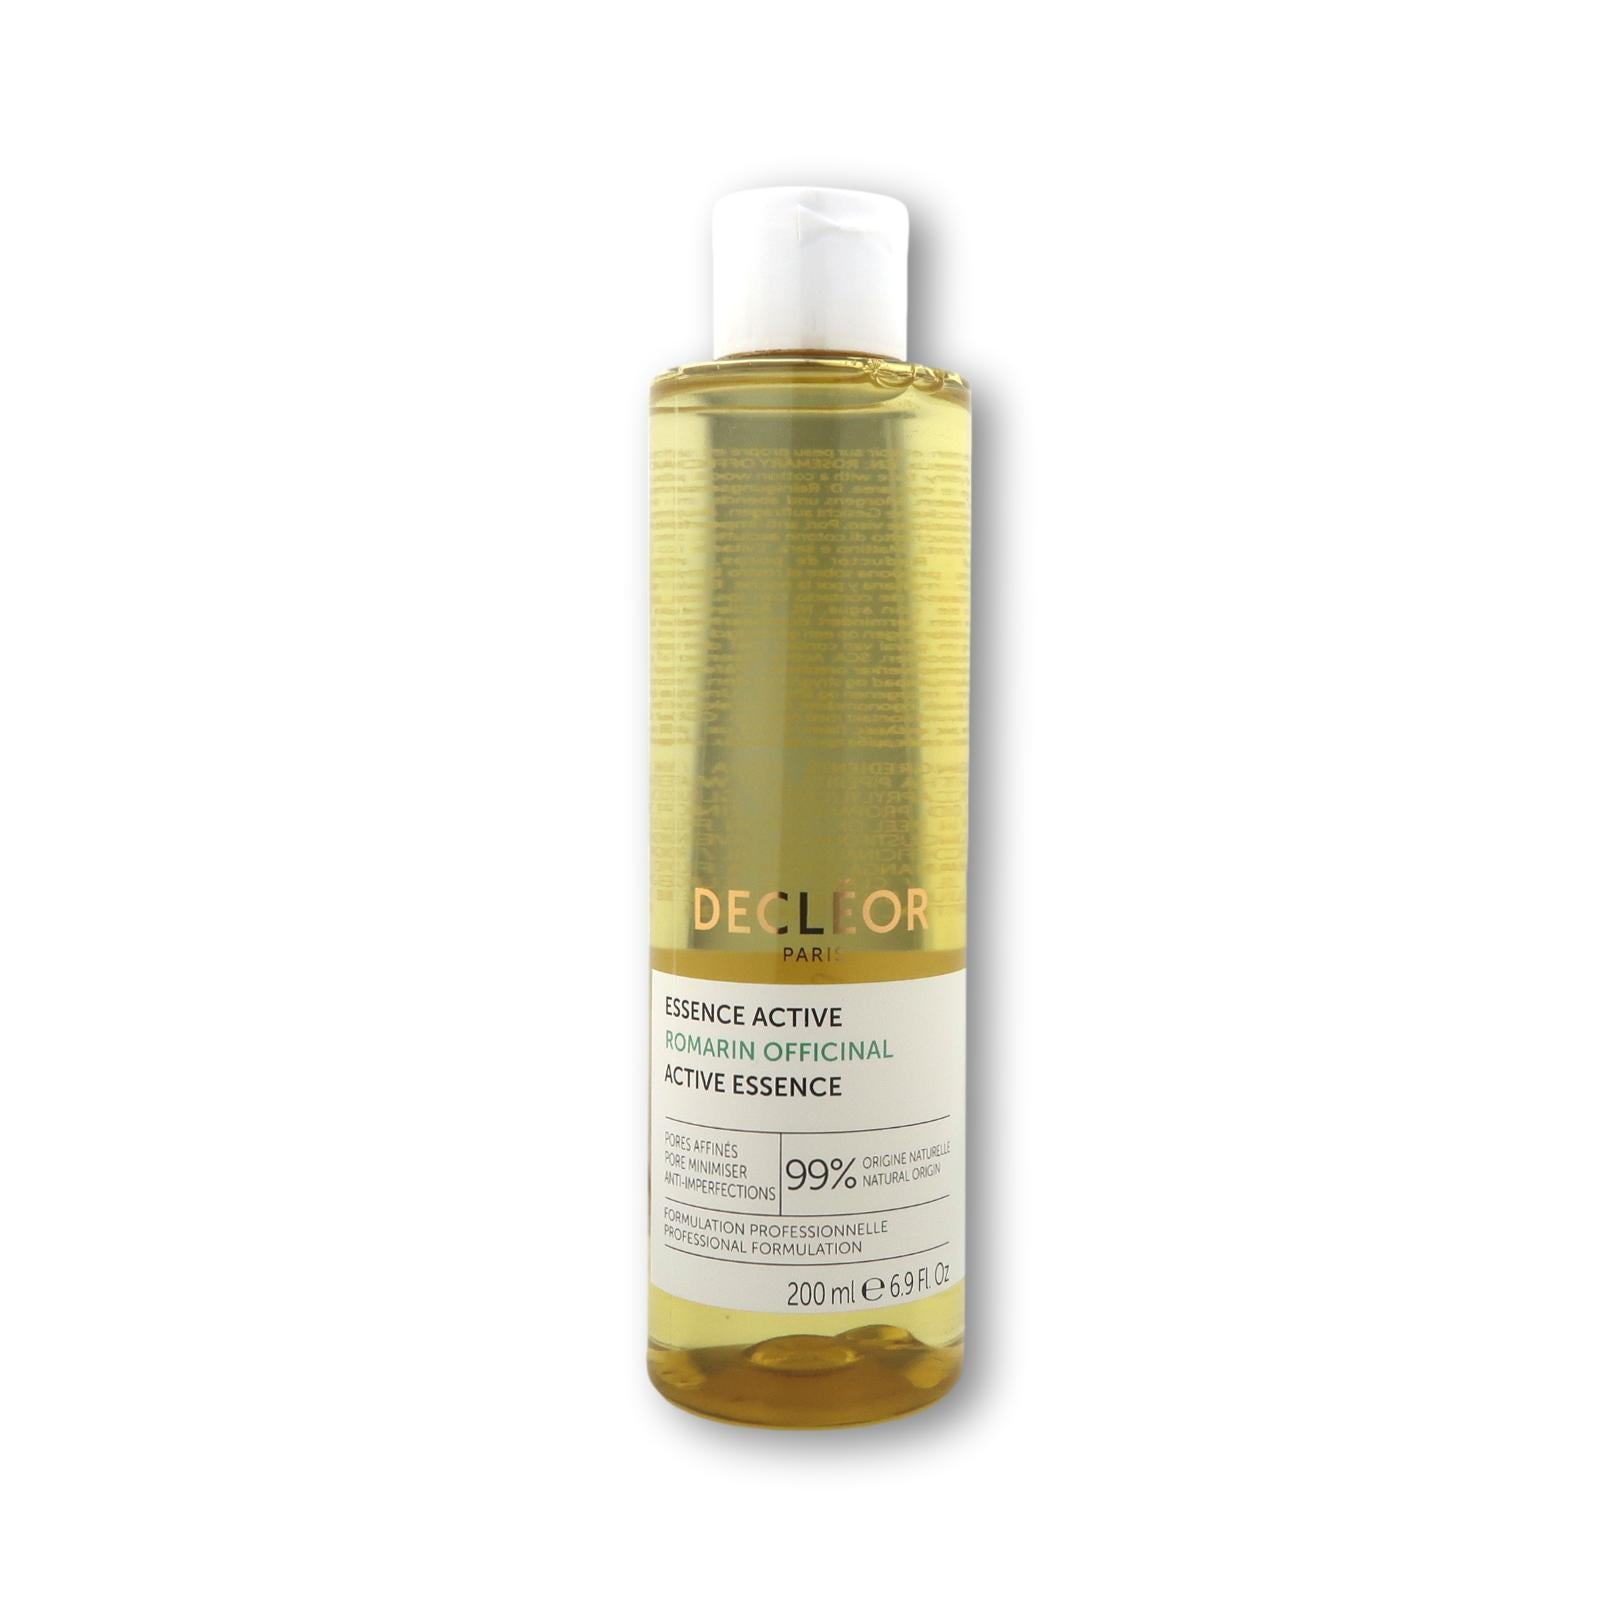 Decleor Rosemary Officinalis Active Essence 200ml